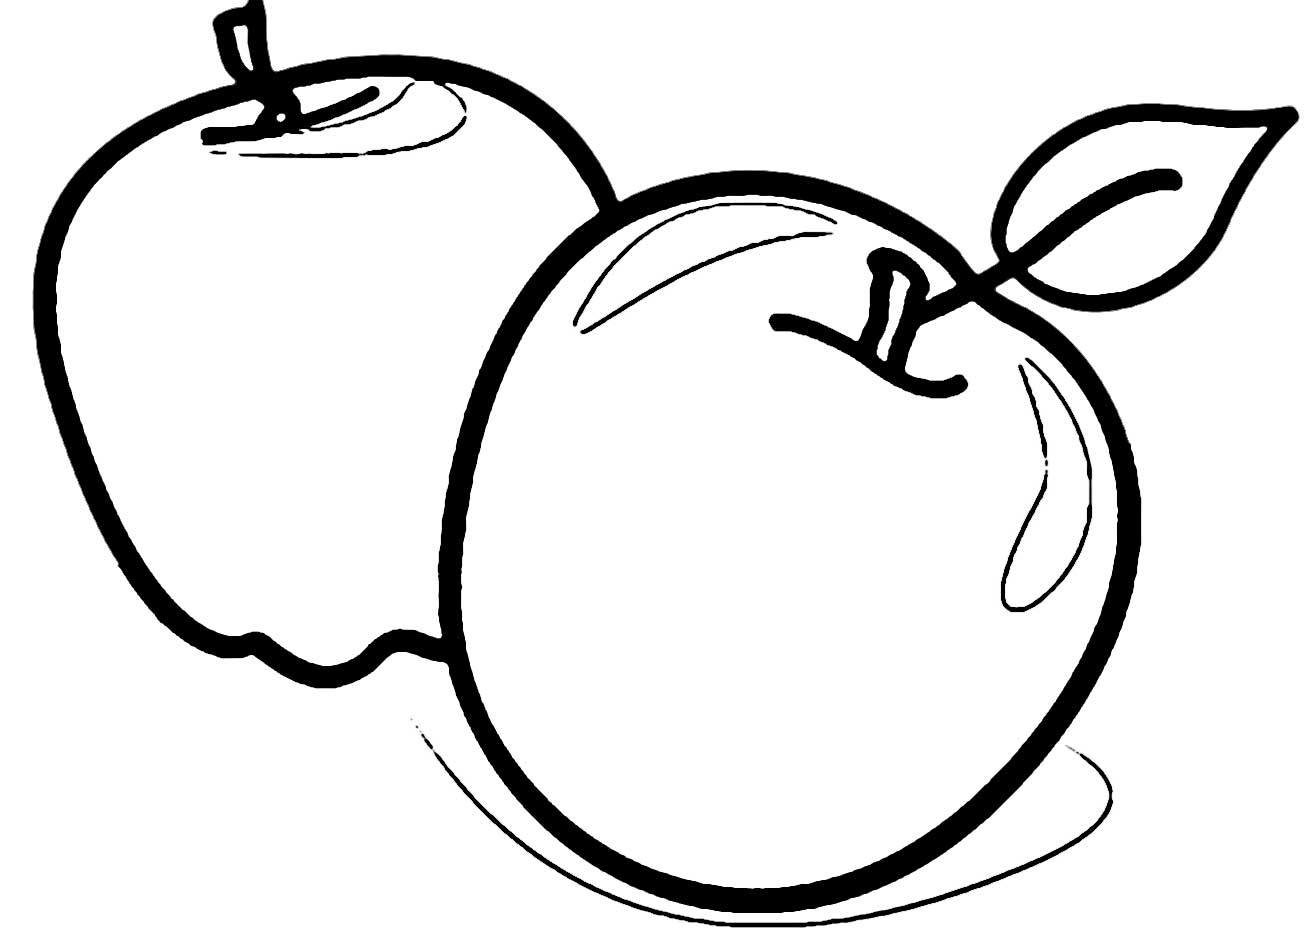 coloring page of an apple apple coloring pages to print an of apple page coloring